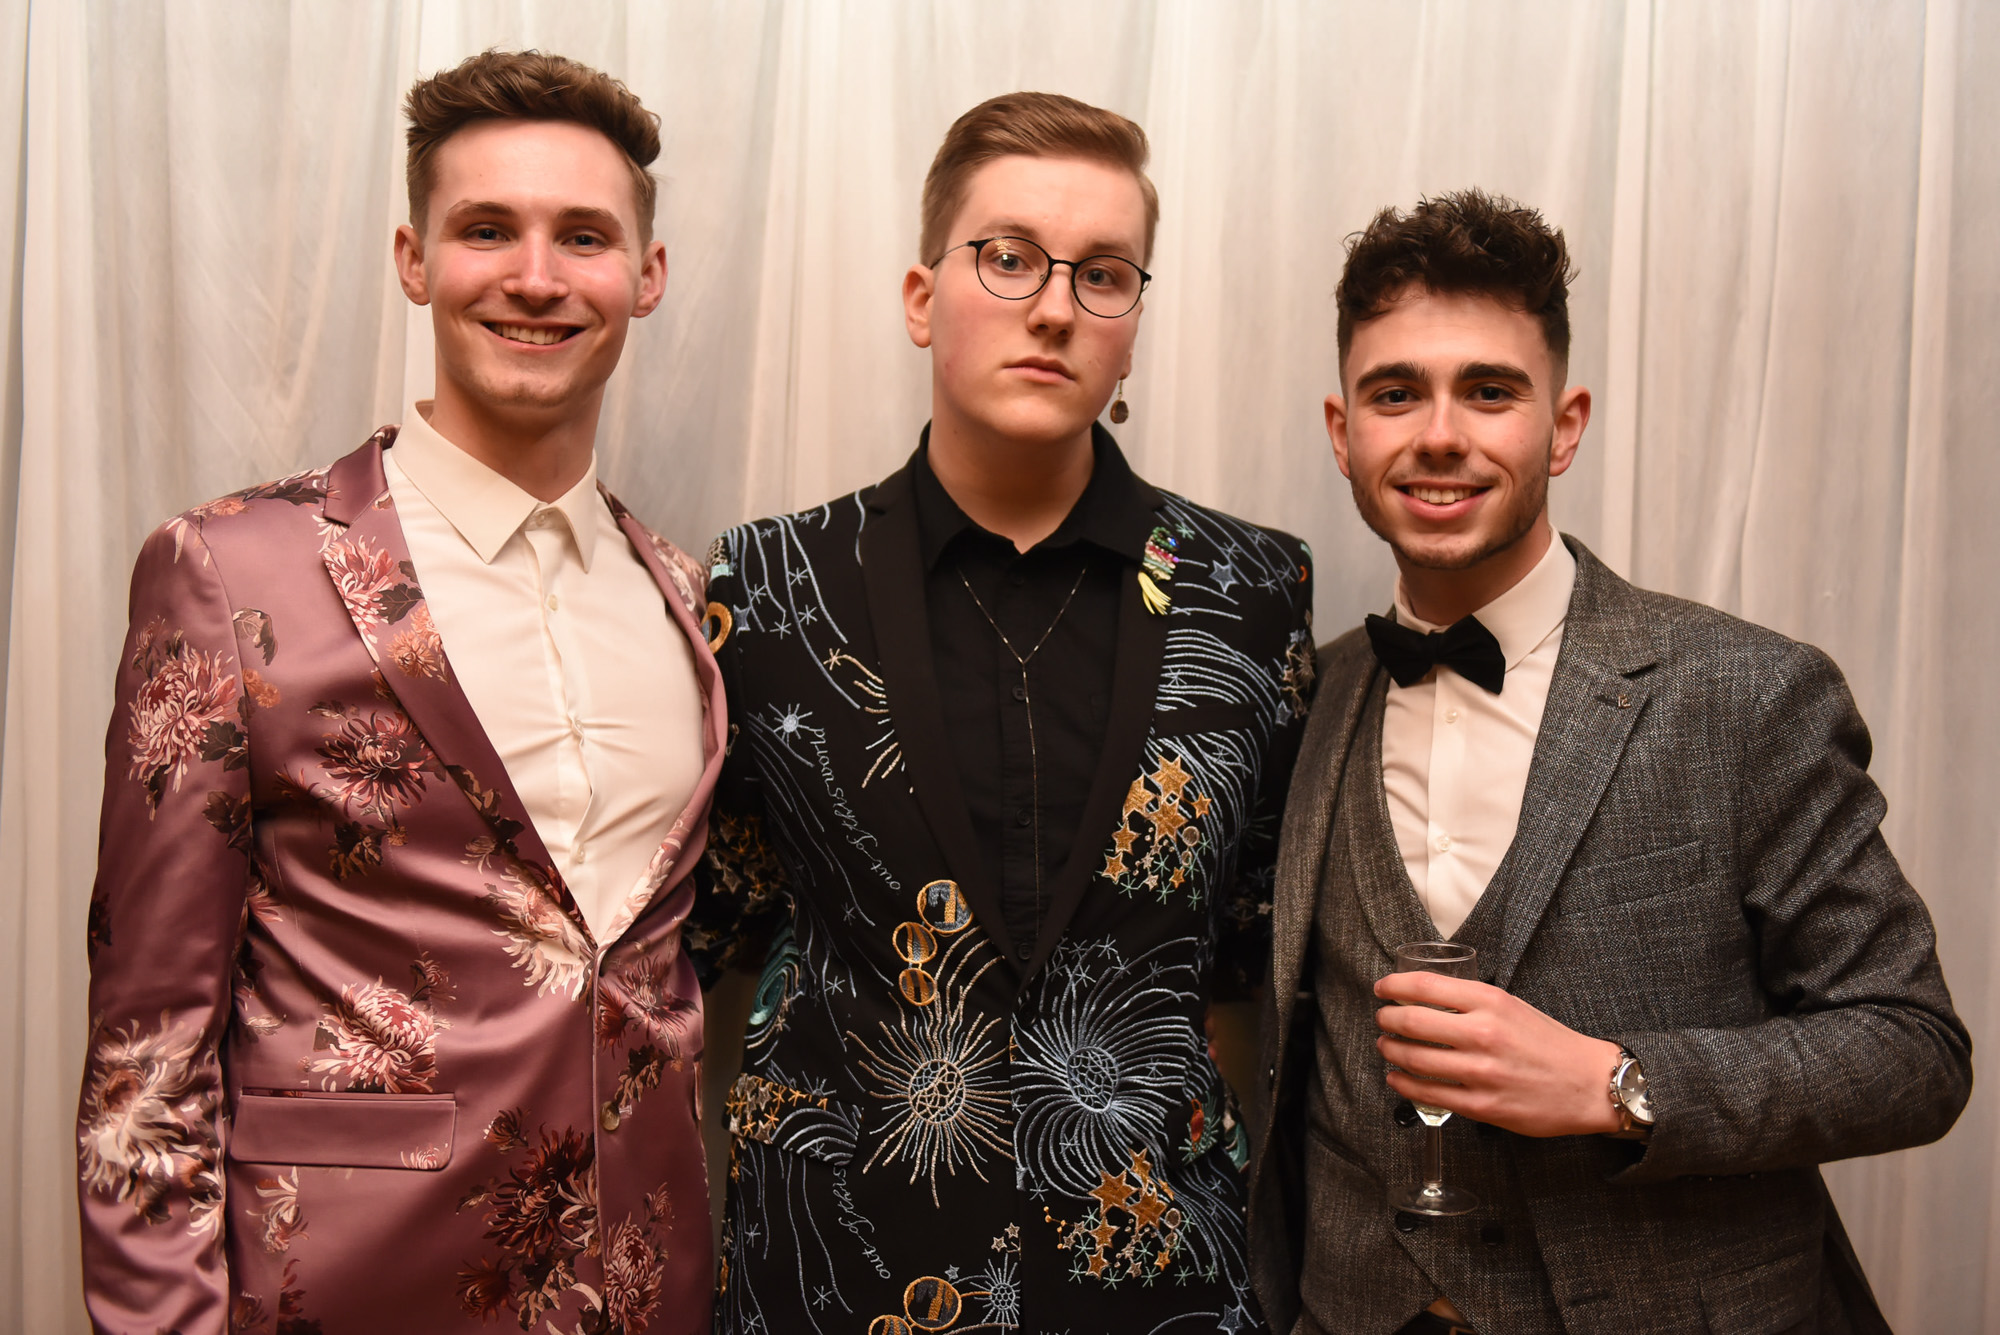 UCLAN_MT_BALL_2019_73.jpg